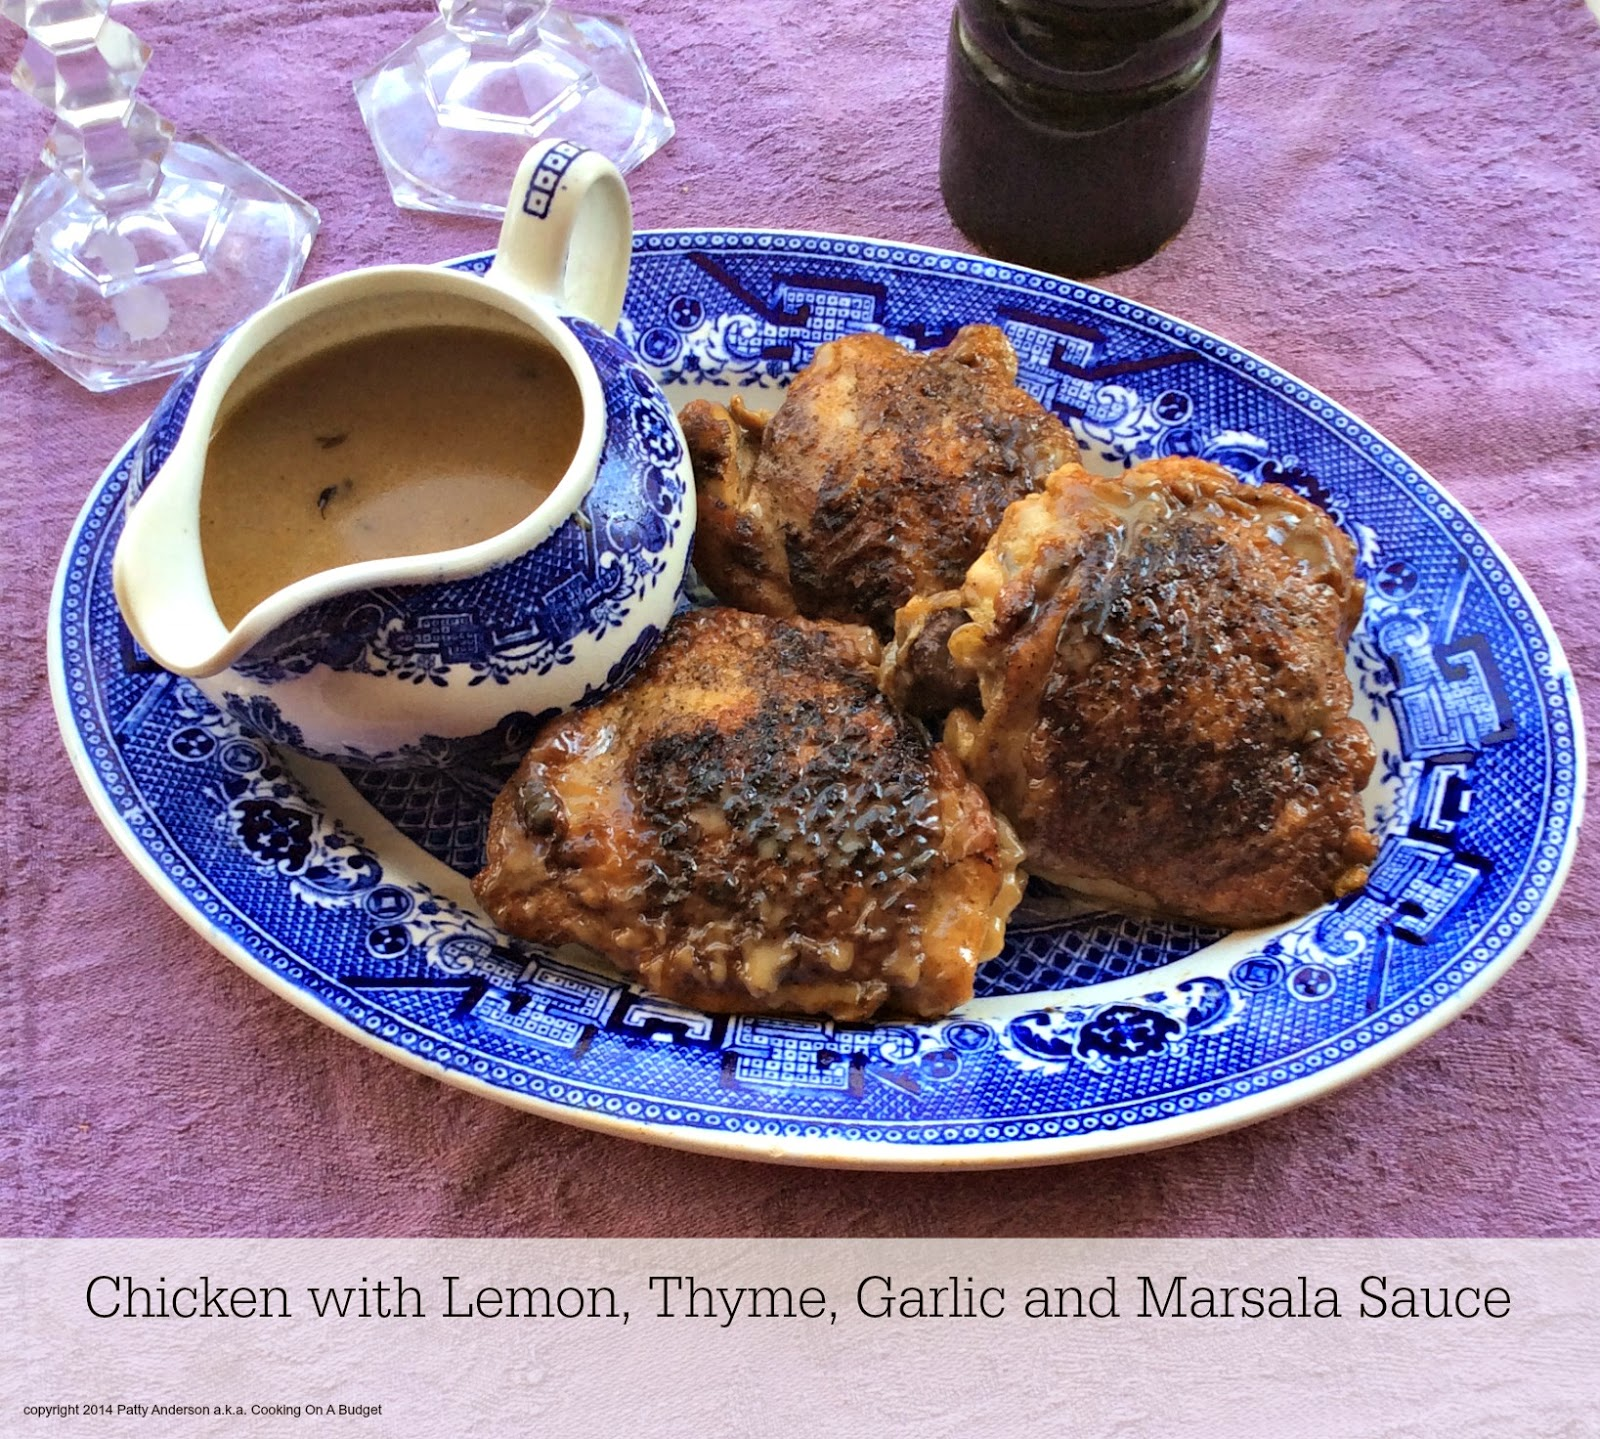 ... On A Budget: Chicken with Lemon, Thyme, Garlic and Marsala Sauce